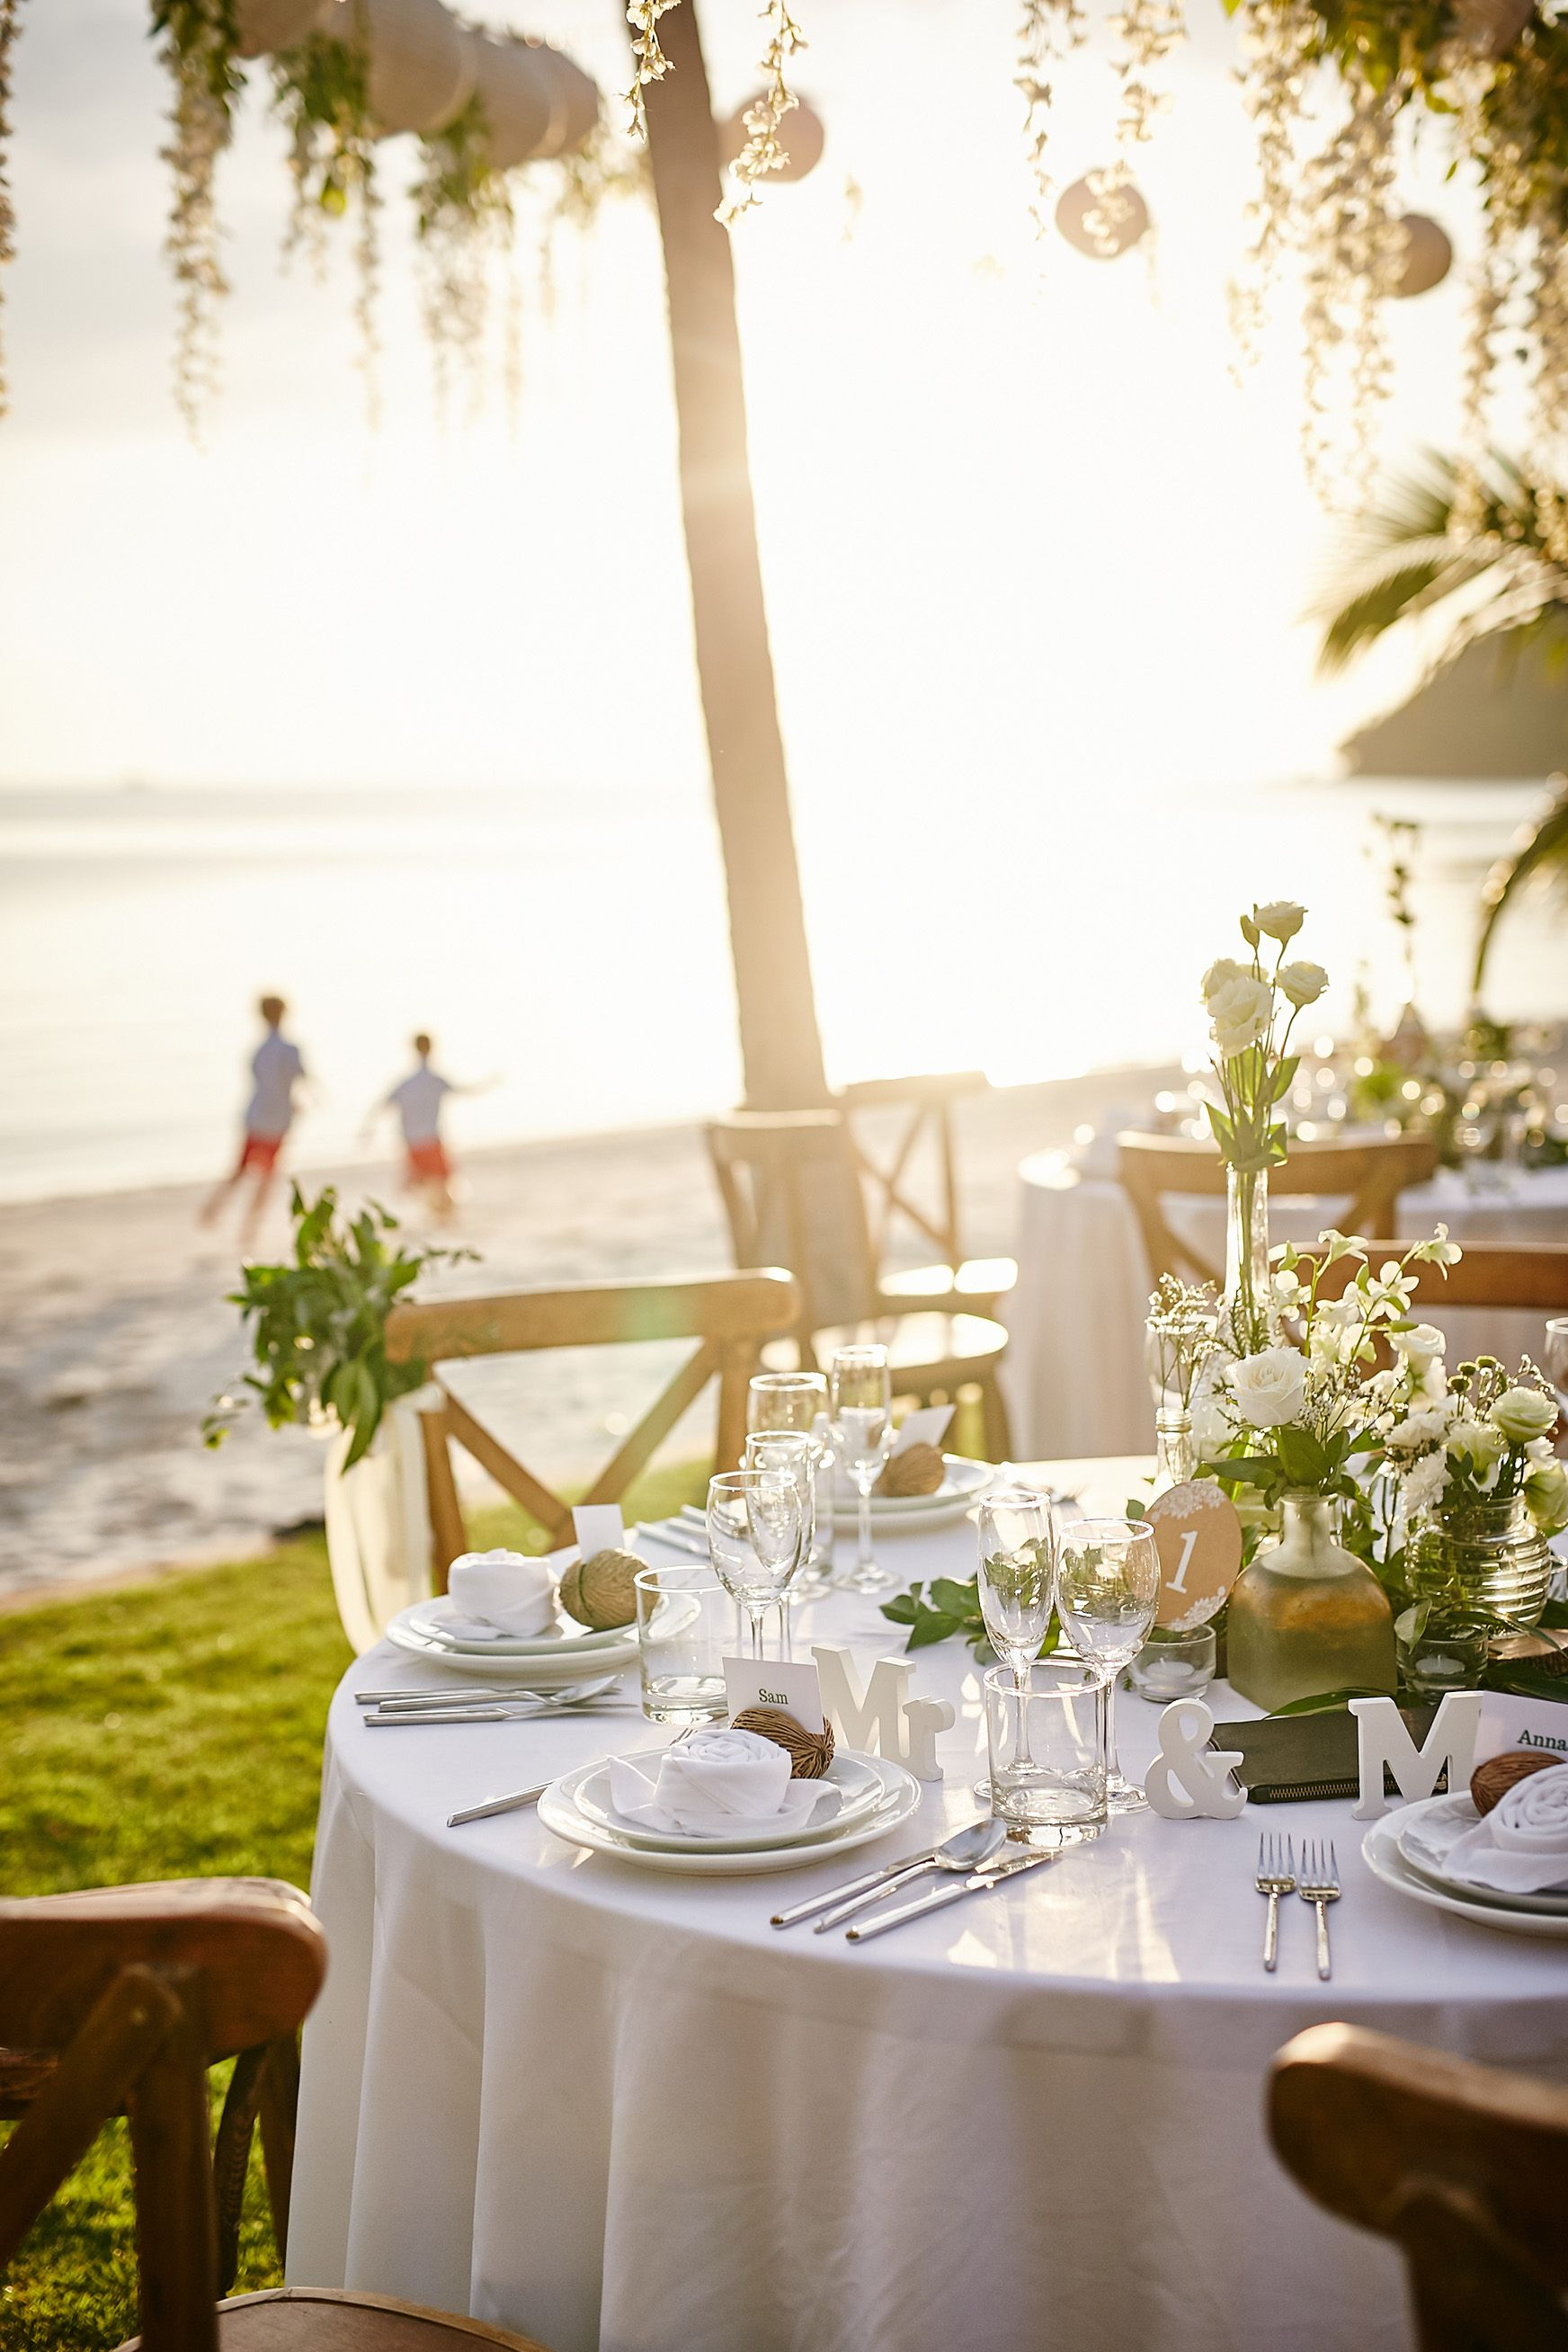 Beach Wedding Table Setting With White Flowers And Greenery